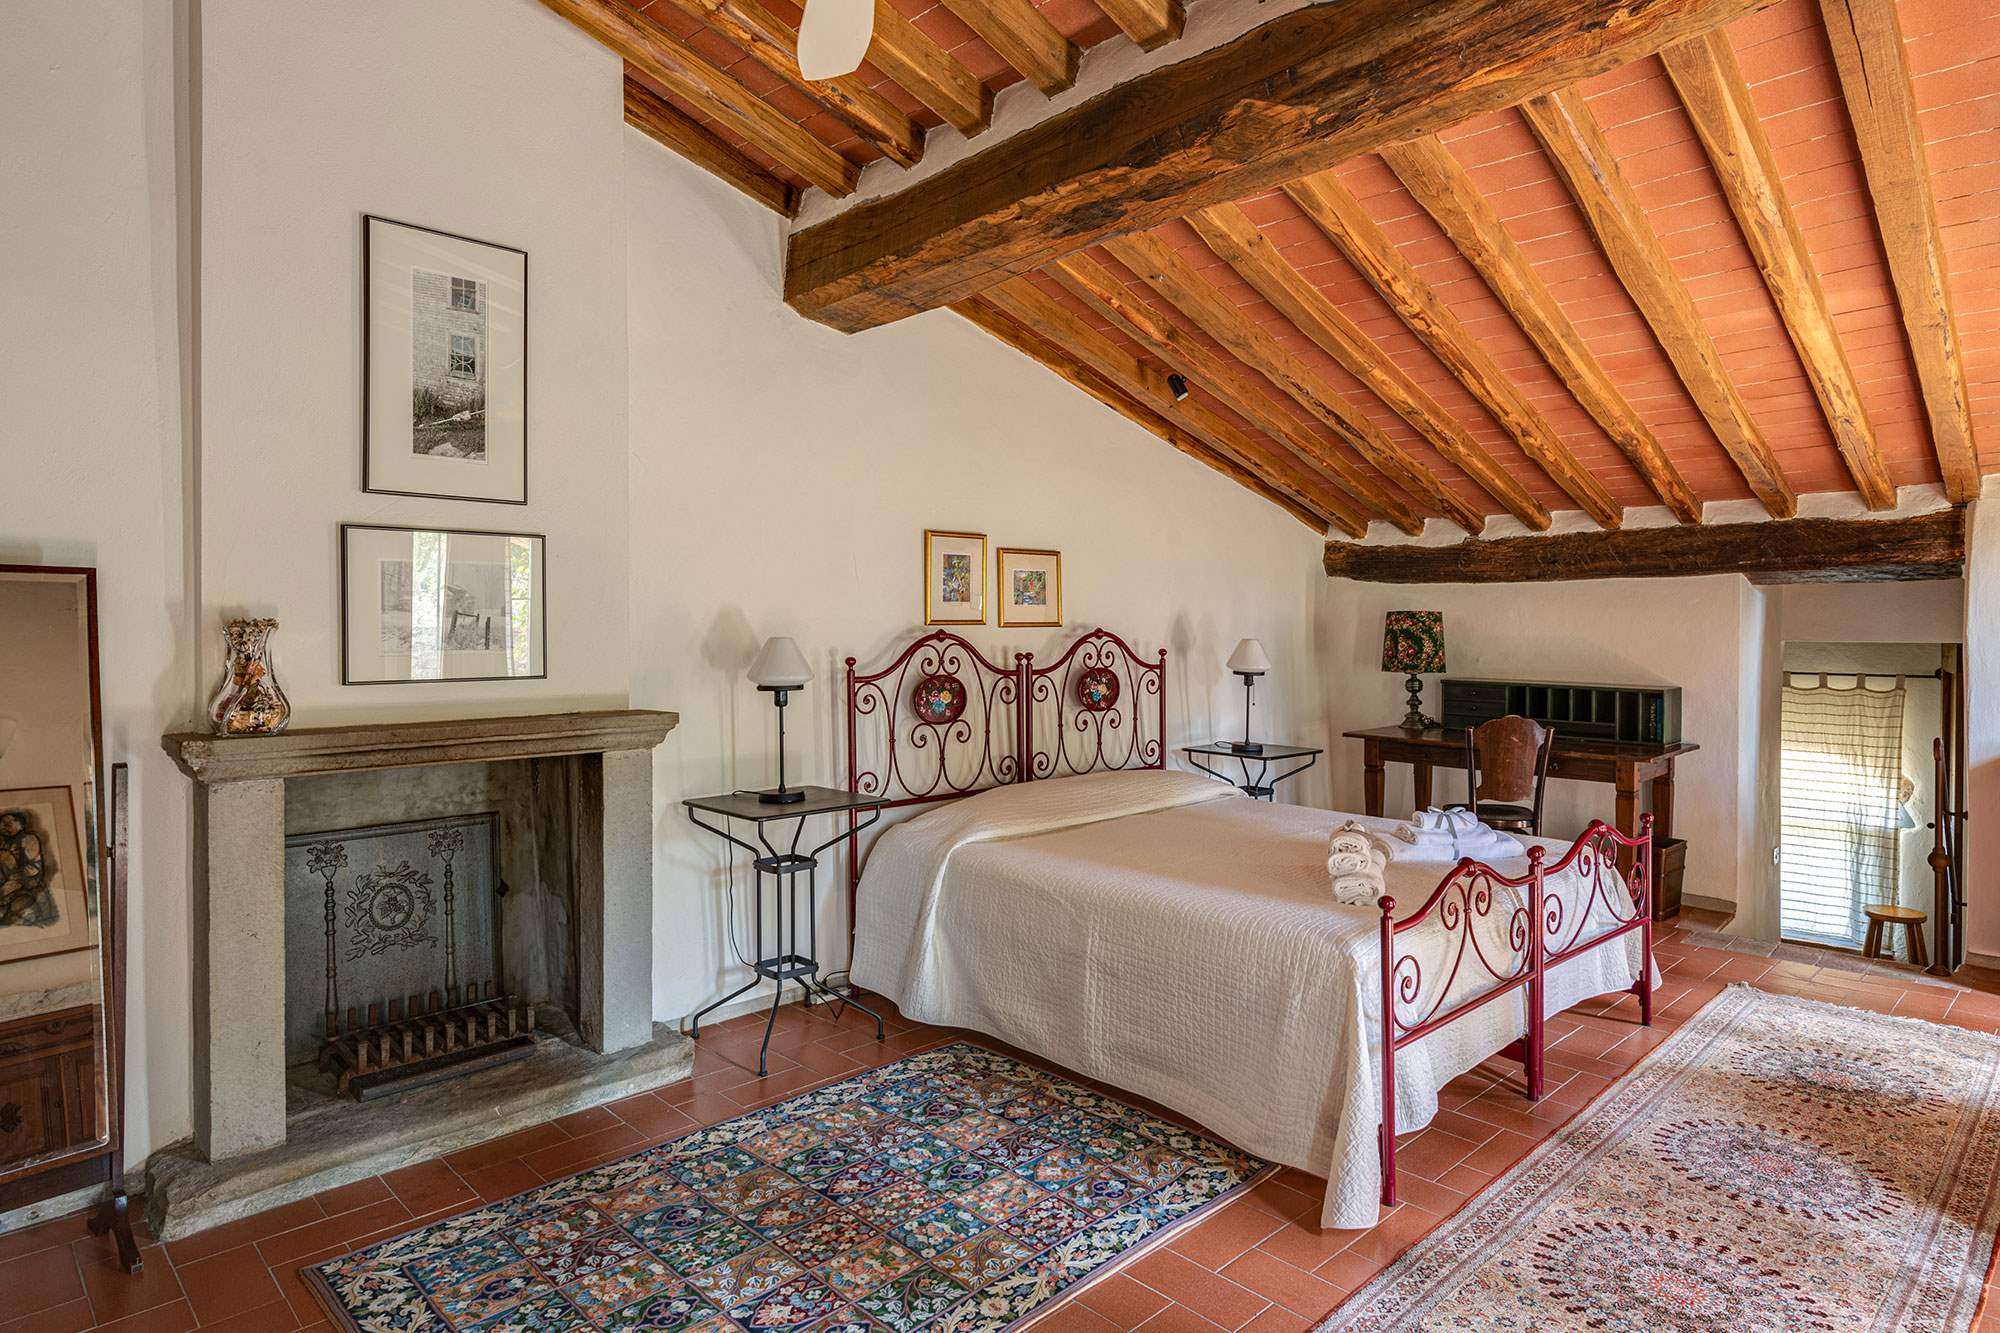 Villa Claudia, 5 Bedroom rate, 5 bedroom villa in Chianti & Countryside, Tuscany Photo #16